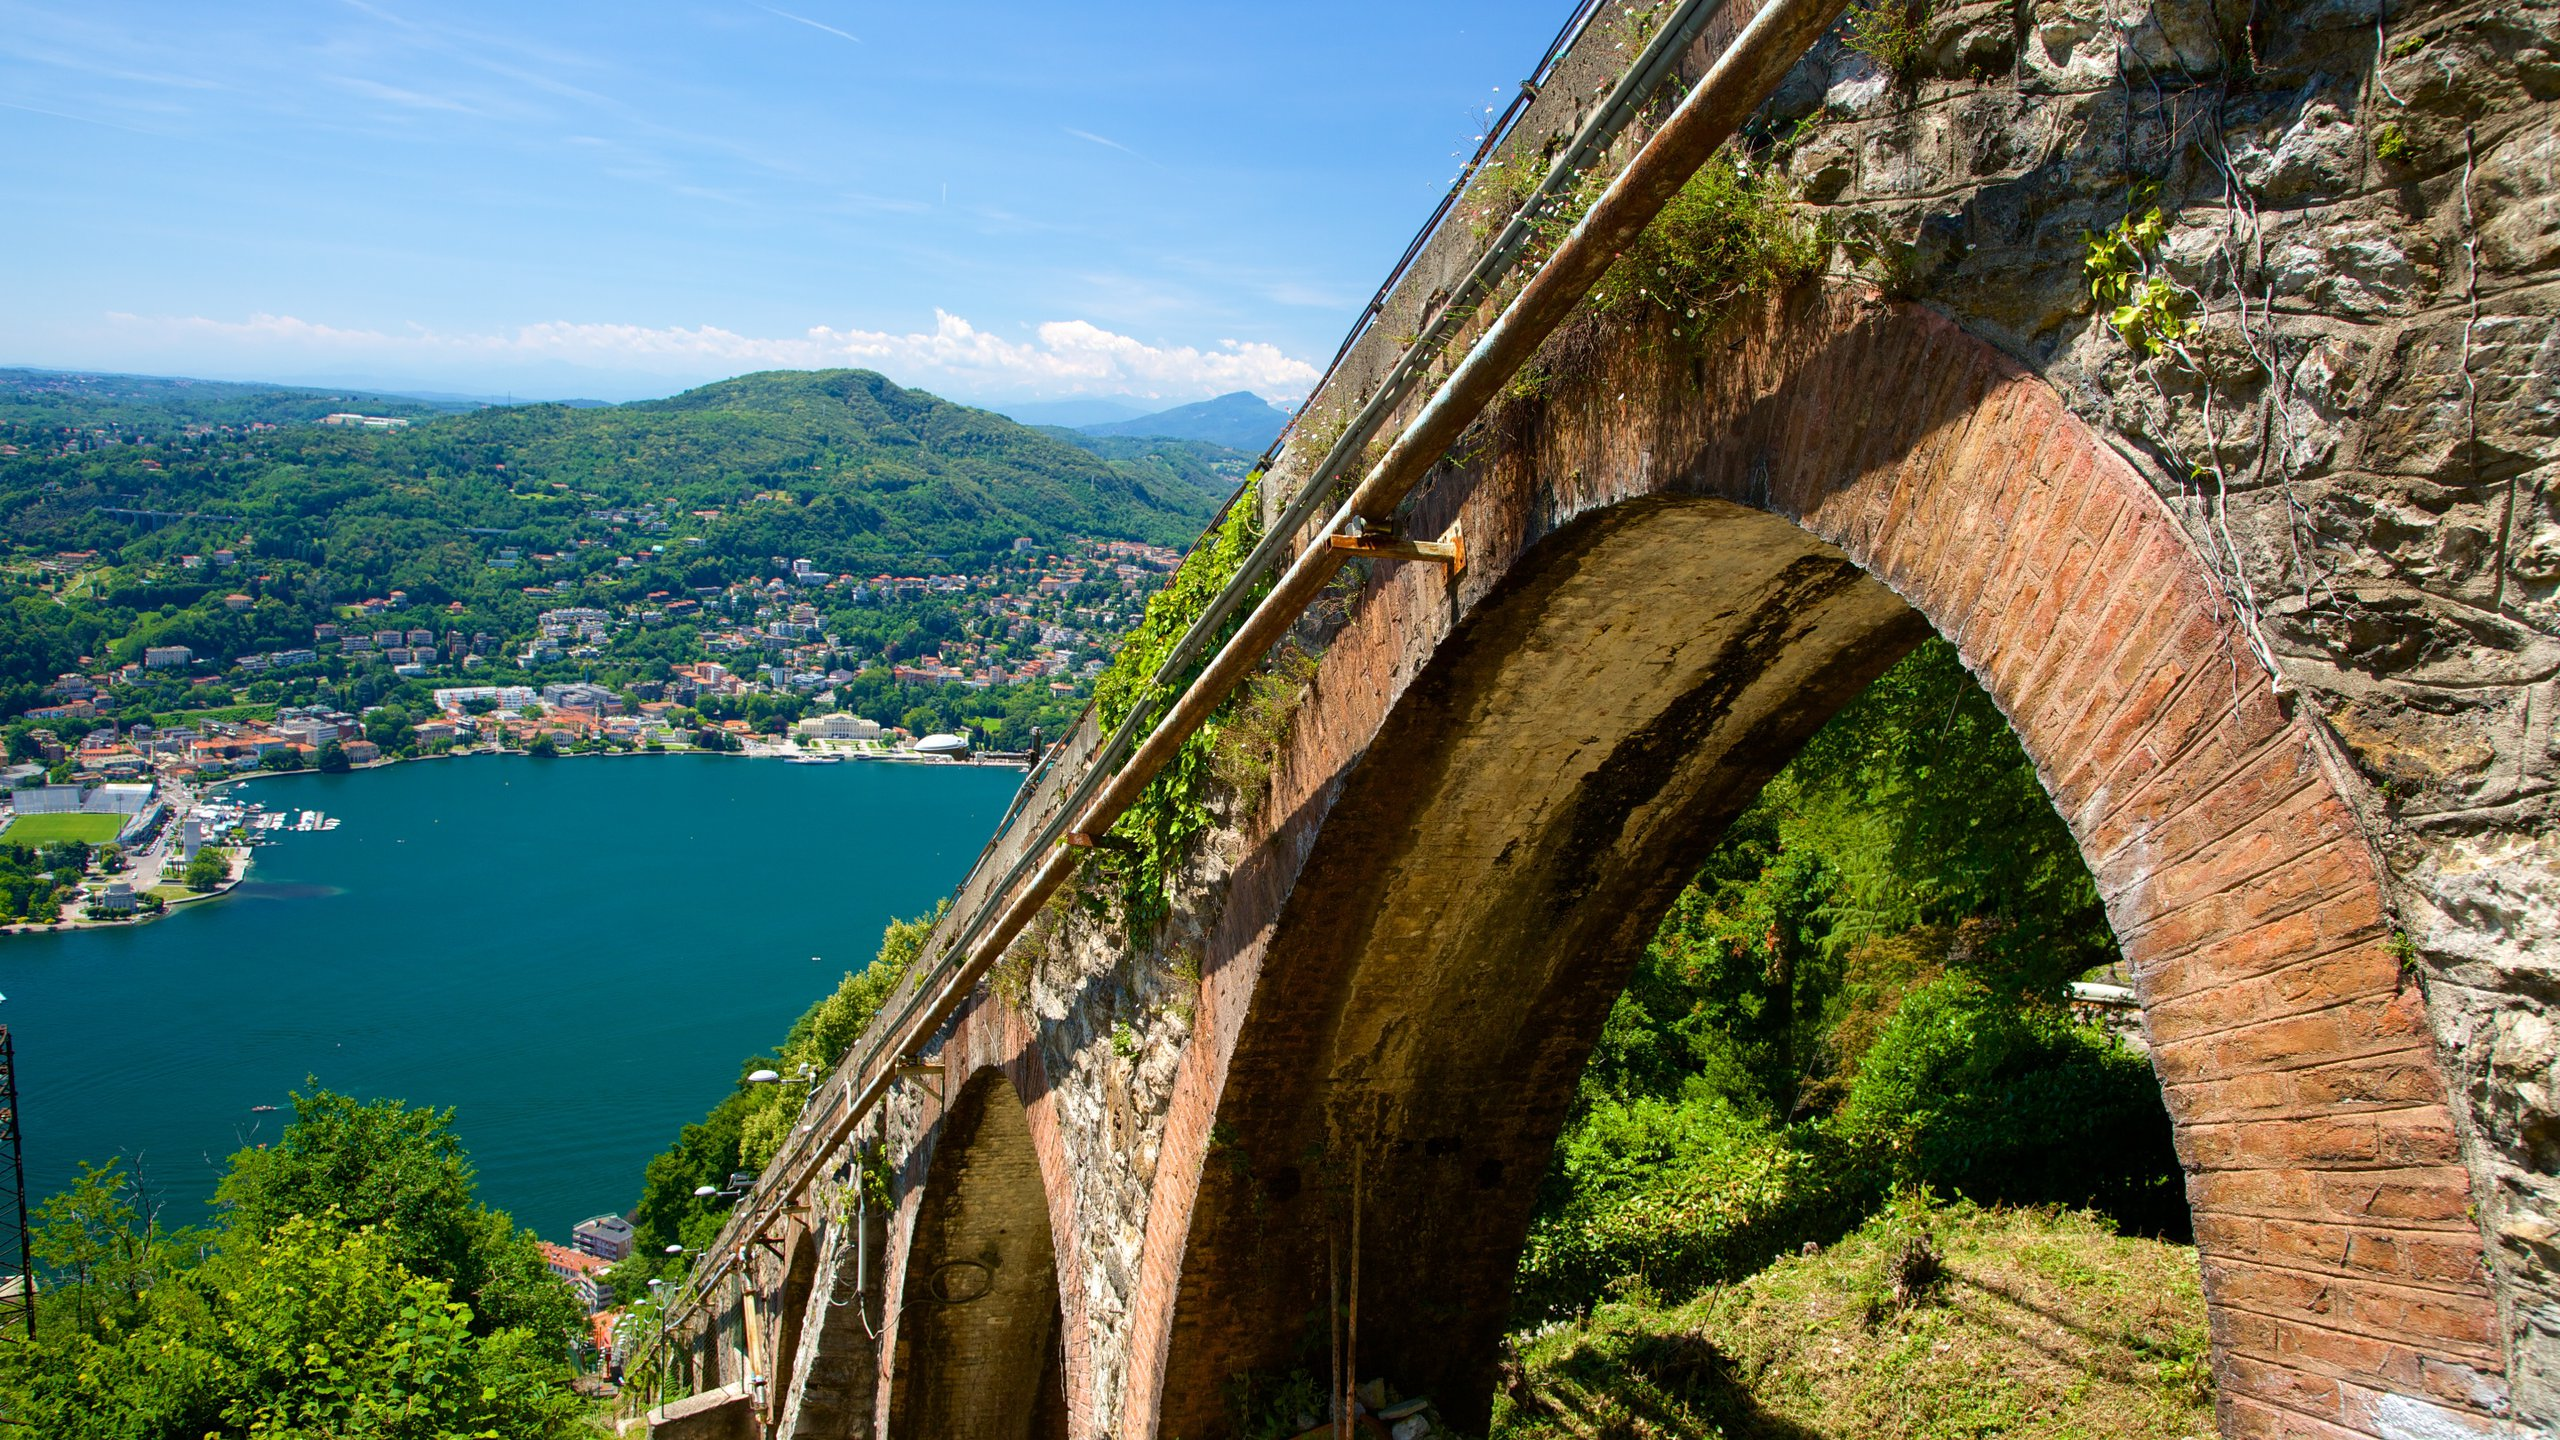 Travel to the hilltop village of Brunate on a funicular railway that is more than 100 years old. Once there, enjoy gorgeous views and follow trails through the hills.